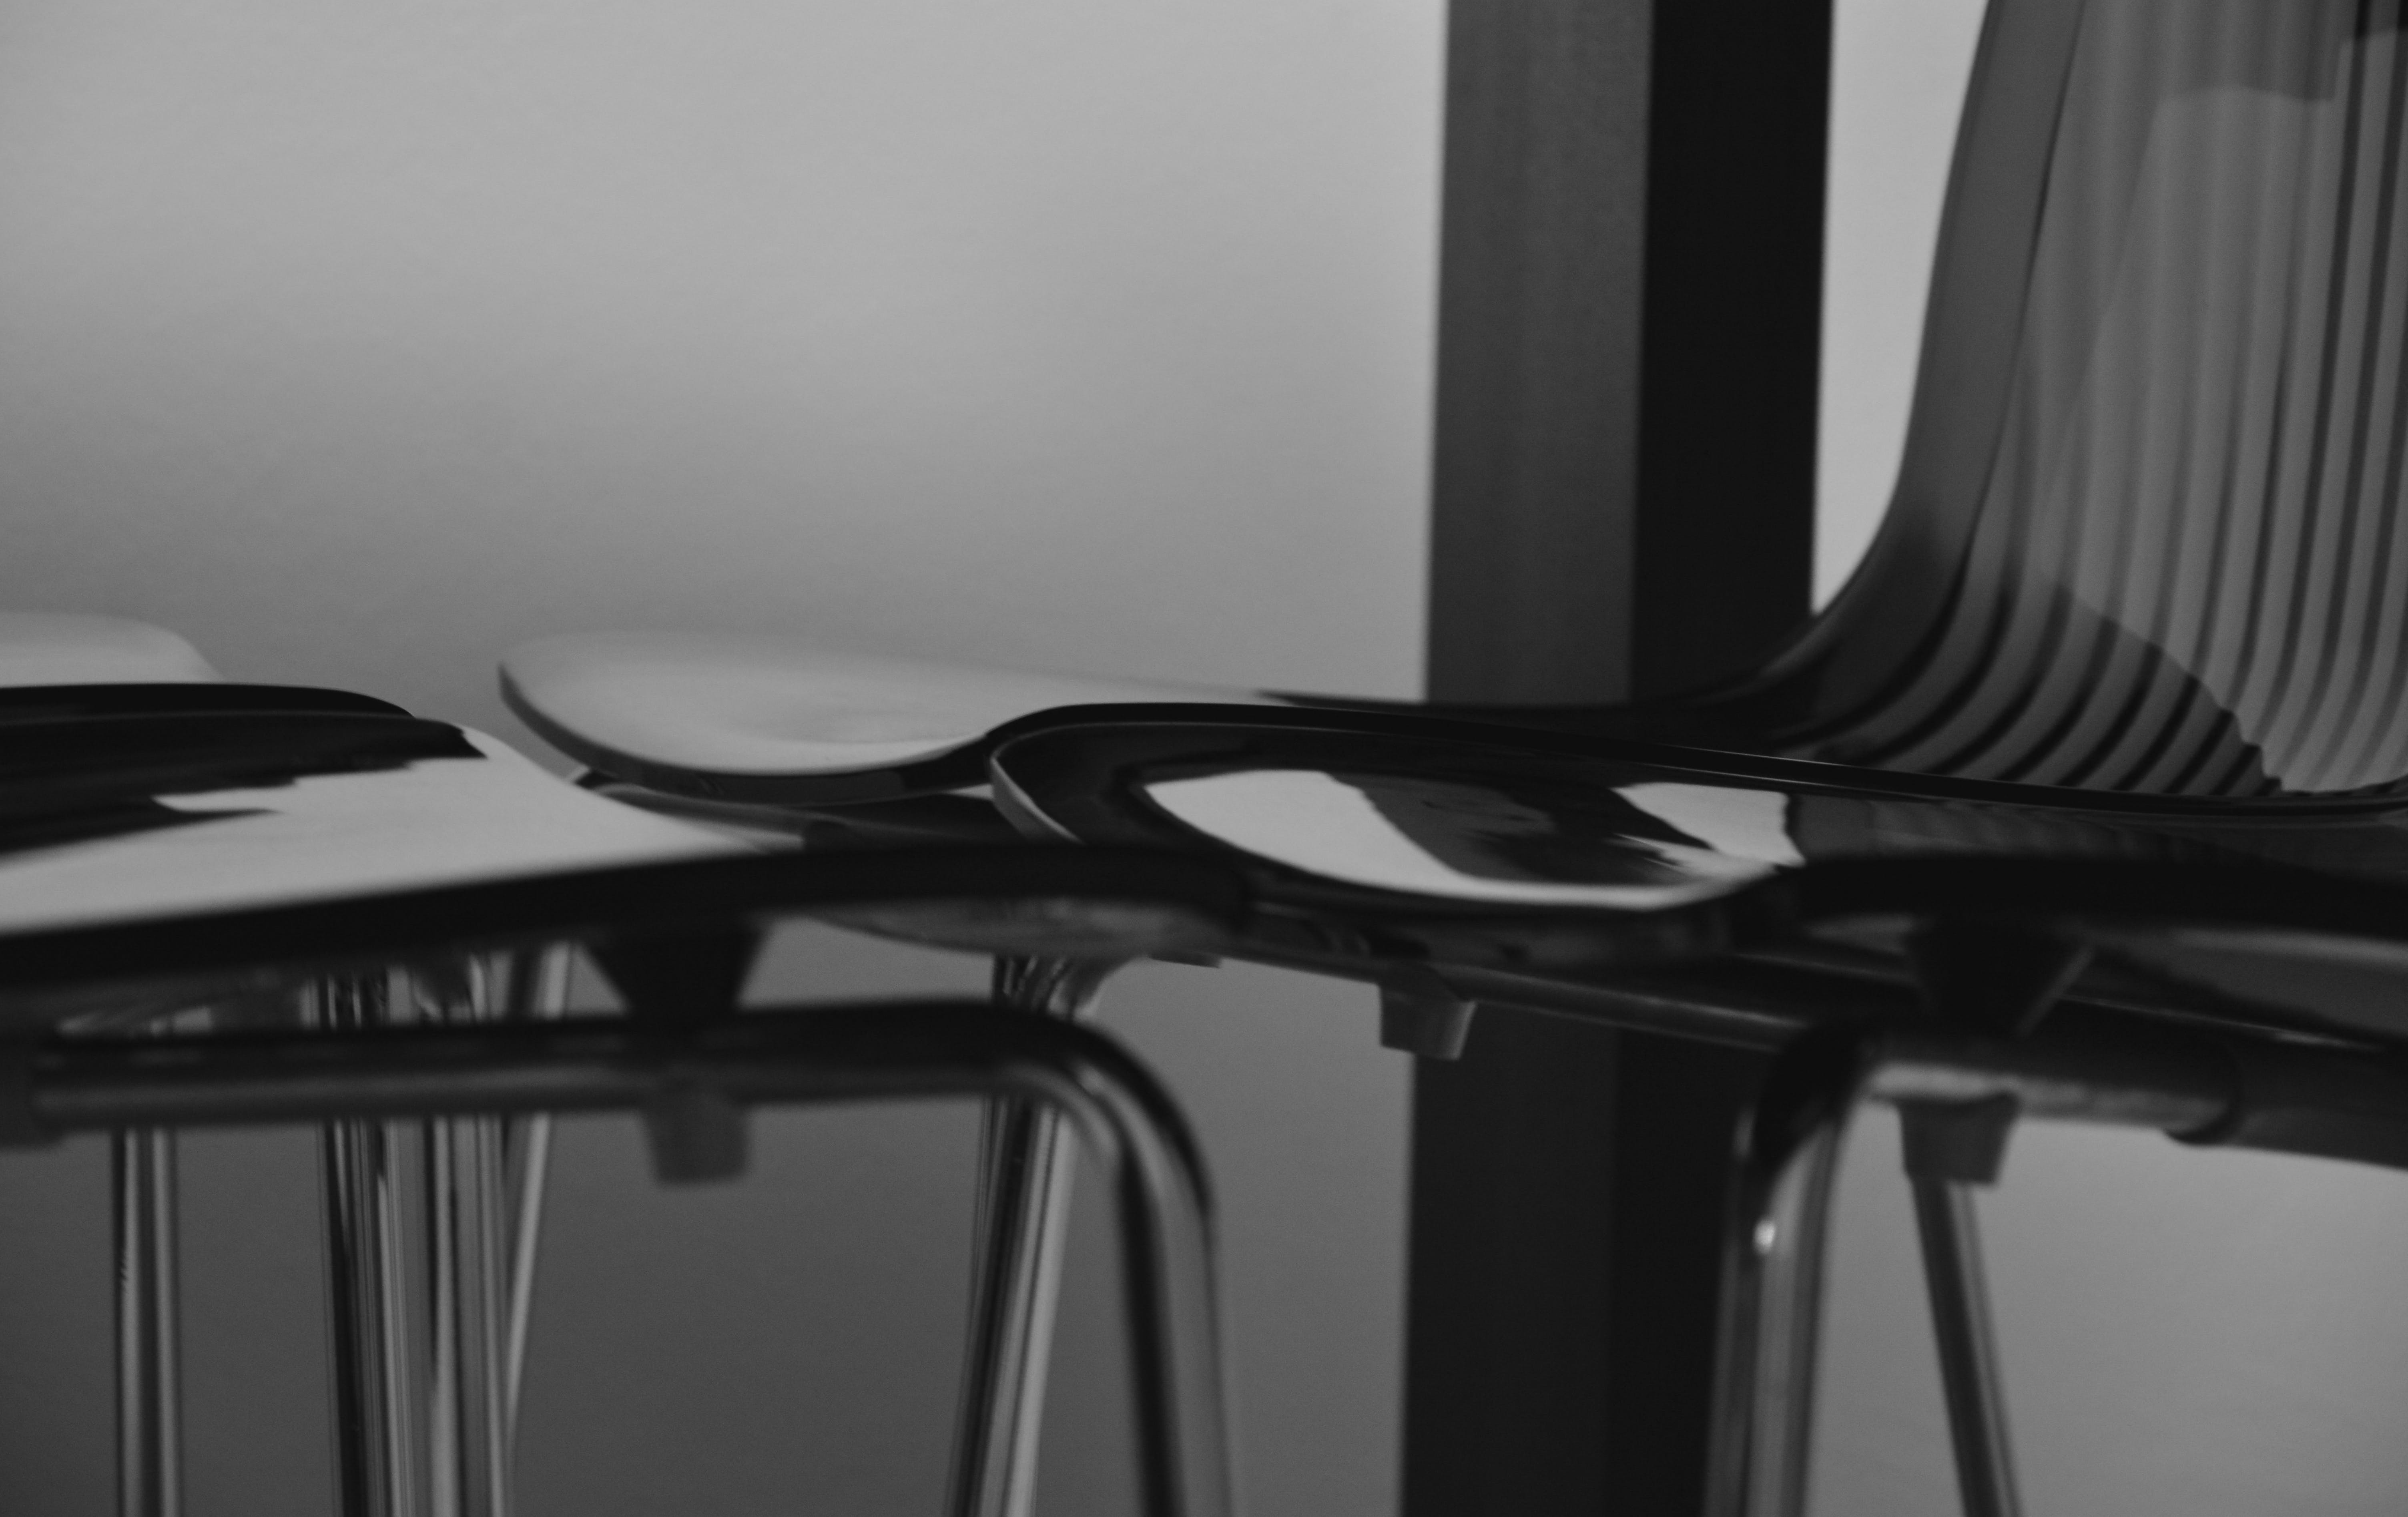 Free stock photo of black-and-white, chairs, furniture, seats